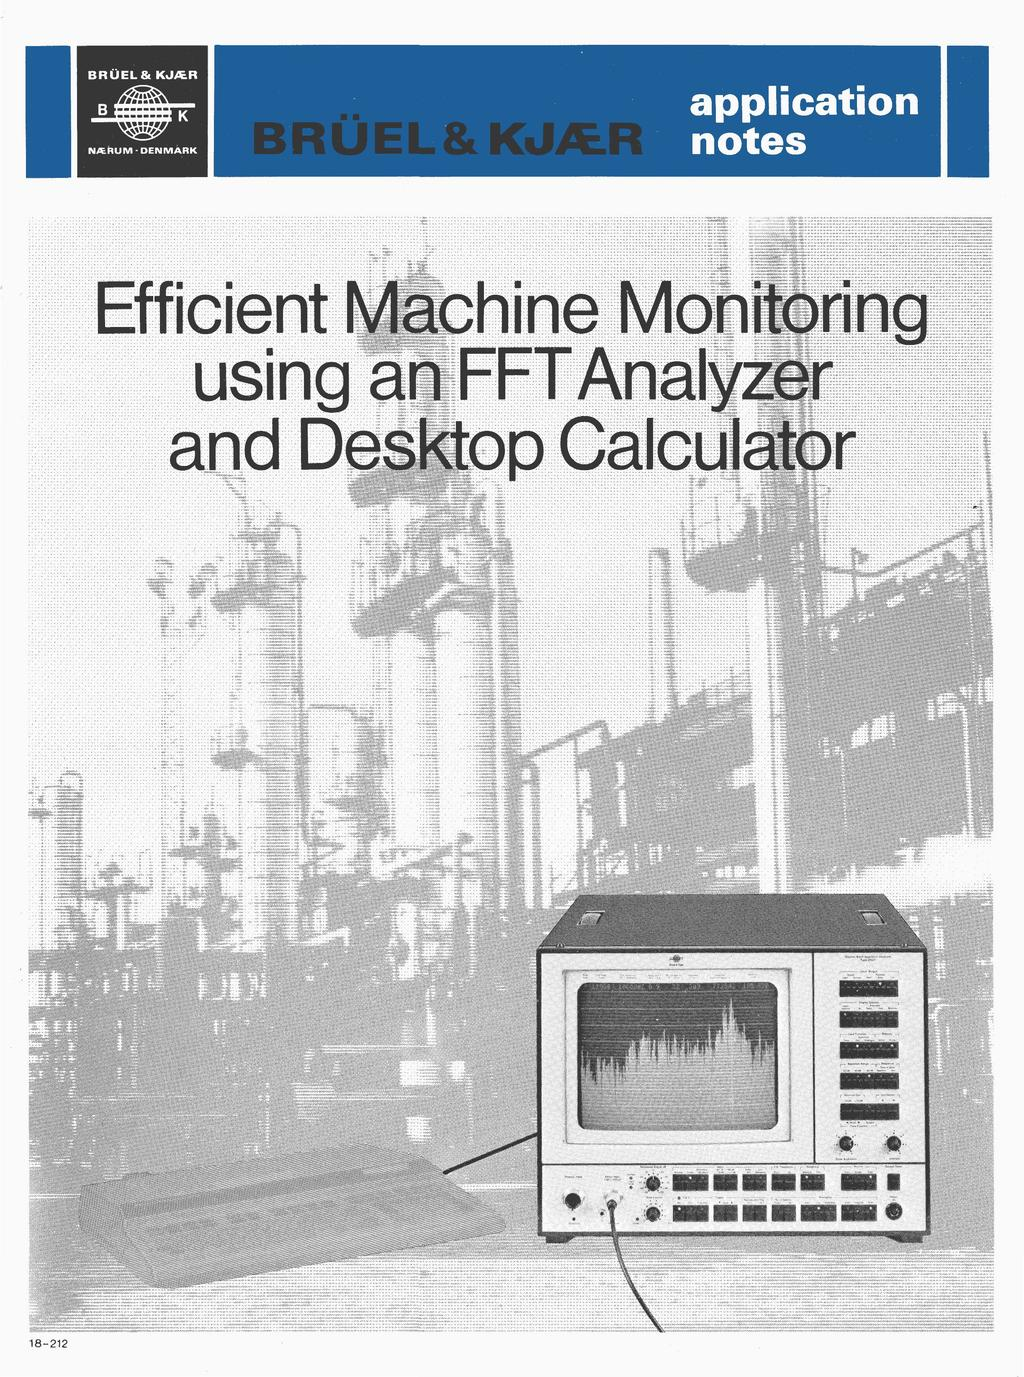 Efficient Machine Monitoring using an FFT Analyzer and Calculator - PDF